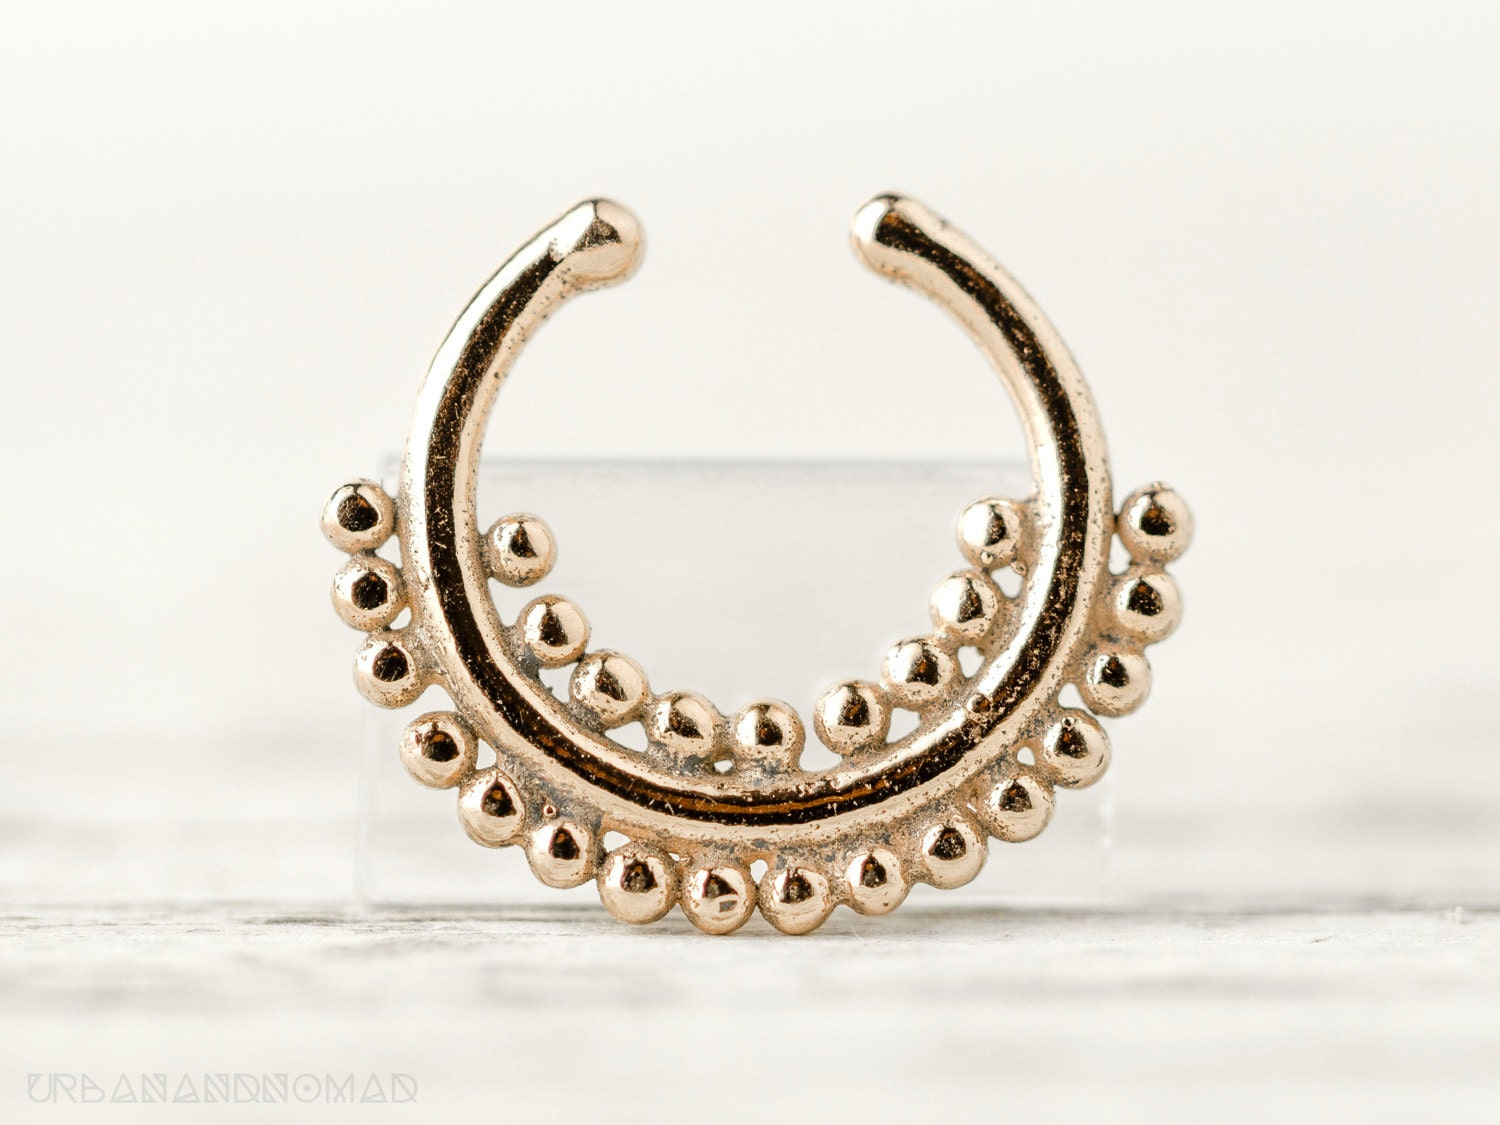 septum piercing nose ring jewelry by